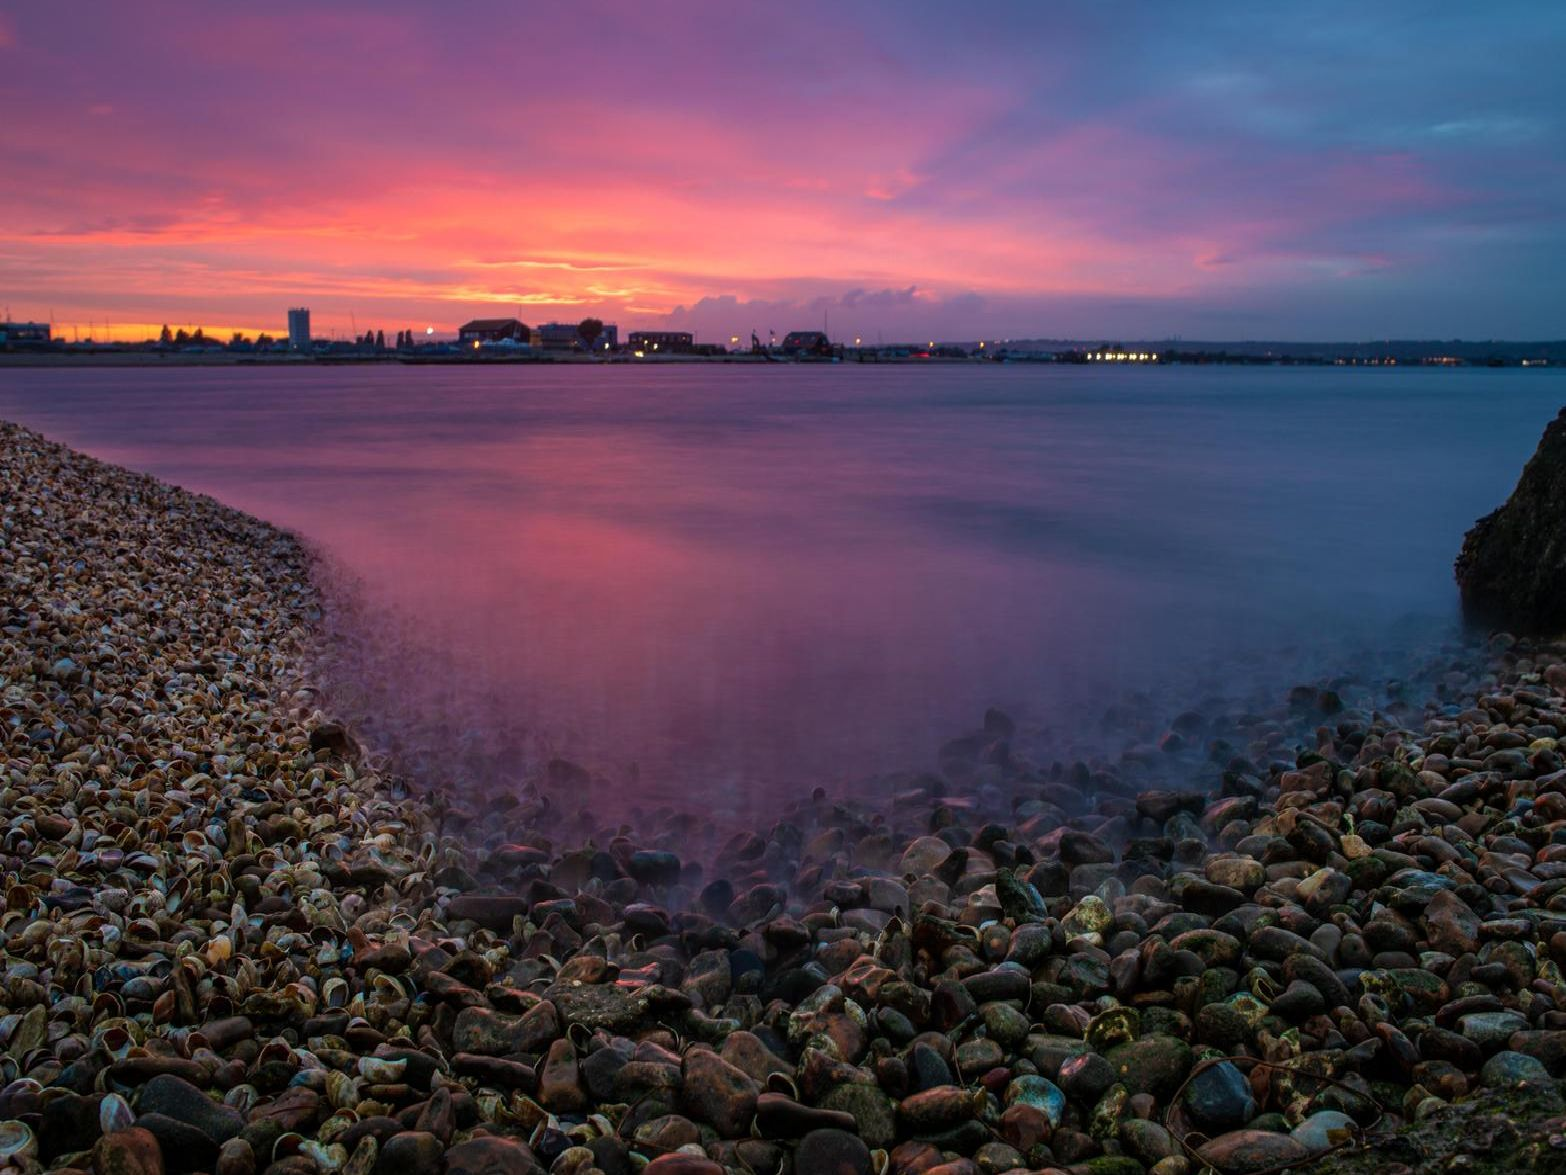 The sun going down over Southsea marina captured by Sean Finch.